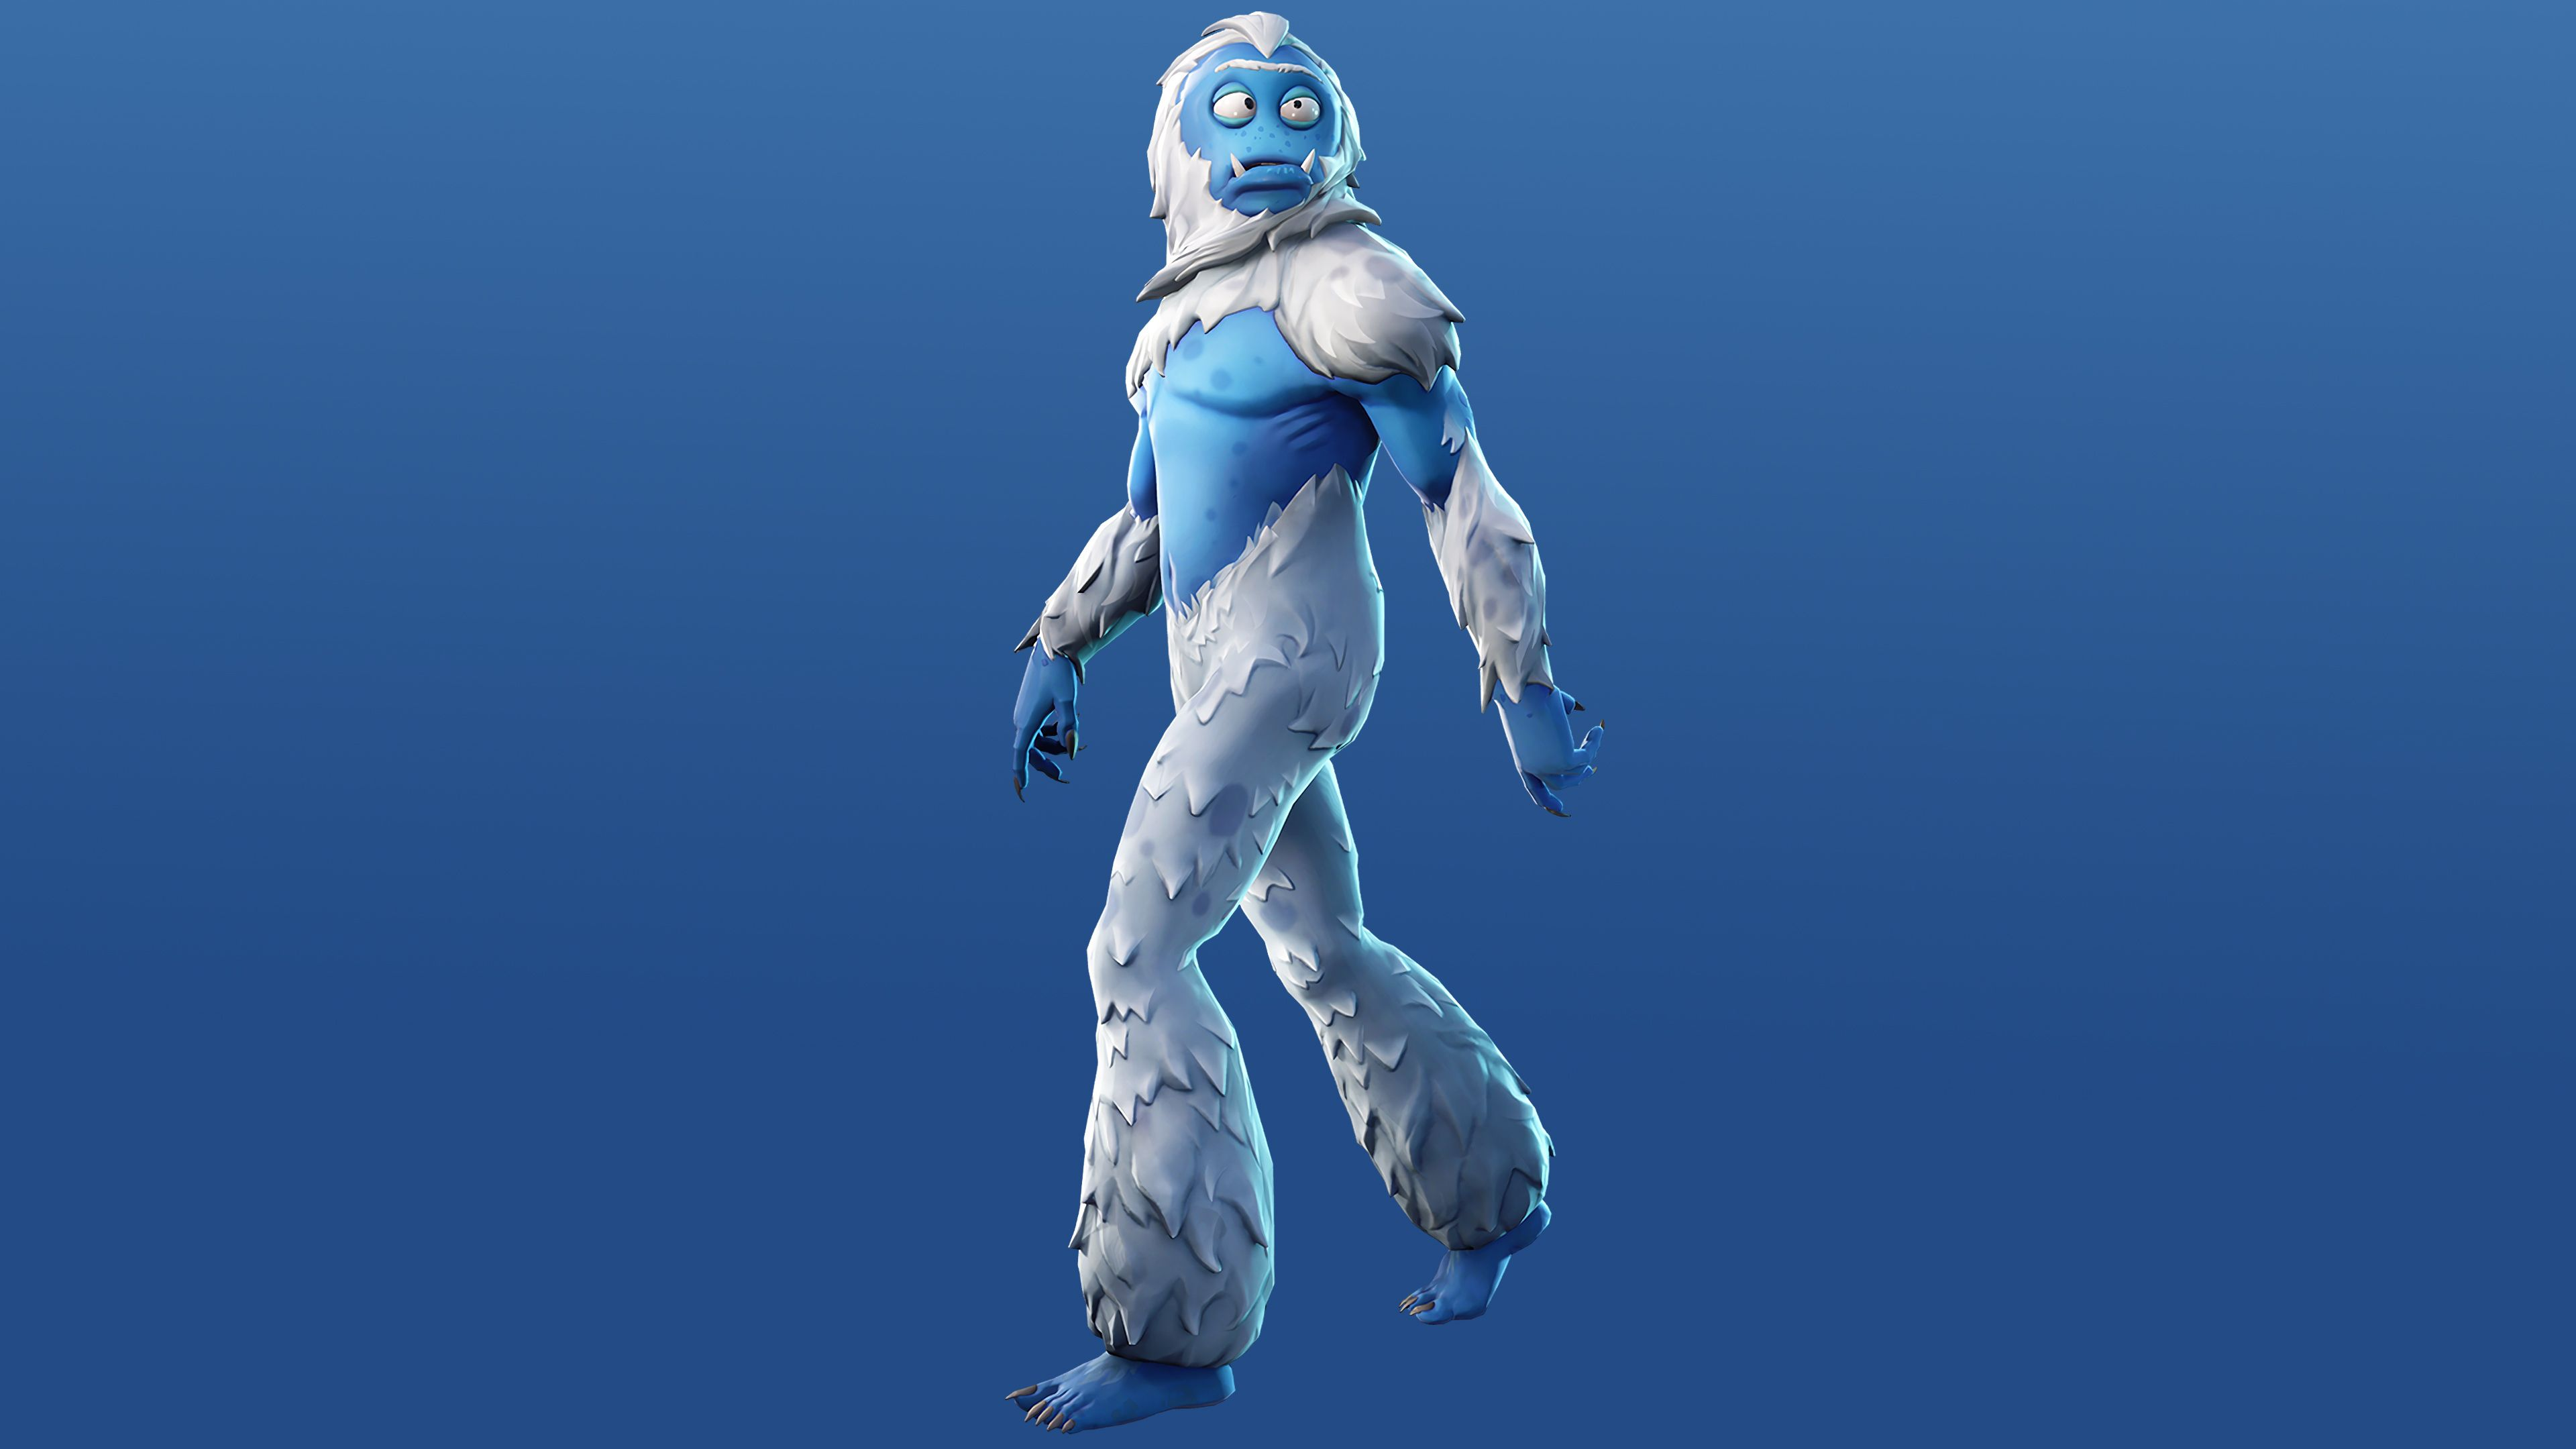 Trog is a Epic Fortnite Outfit from the Mountain Myths set 3840x2160